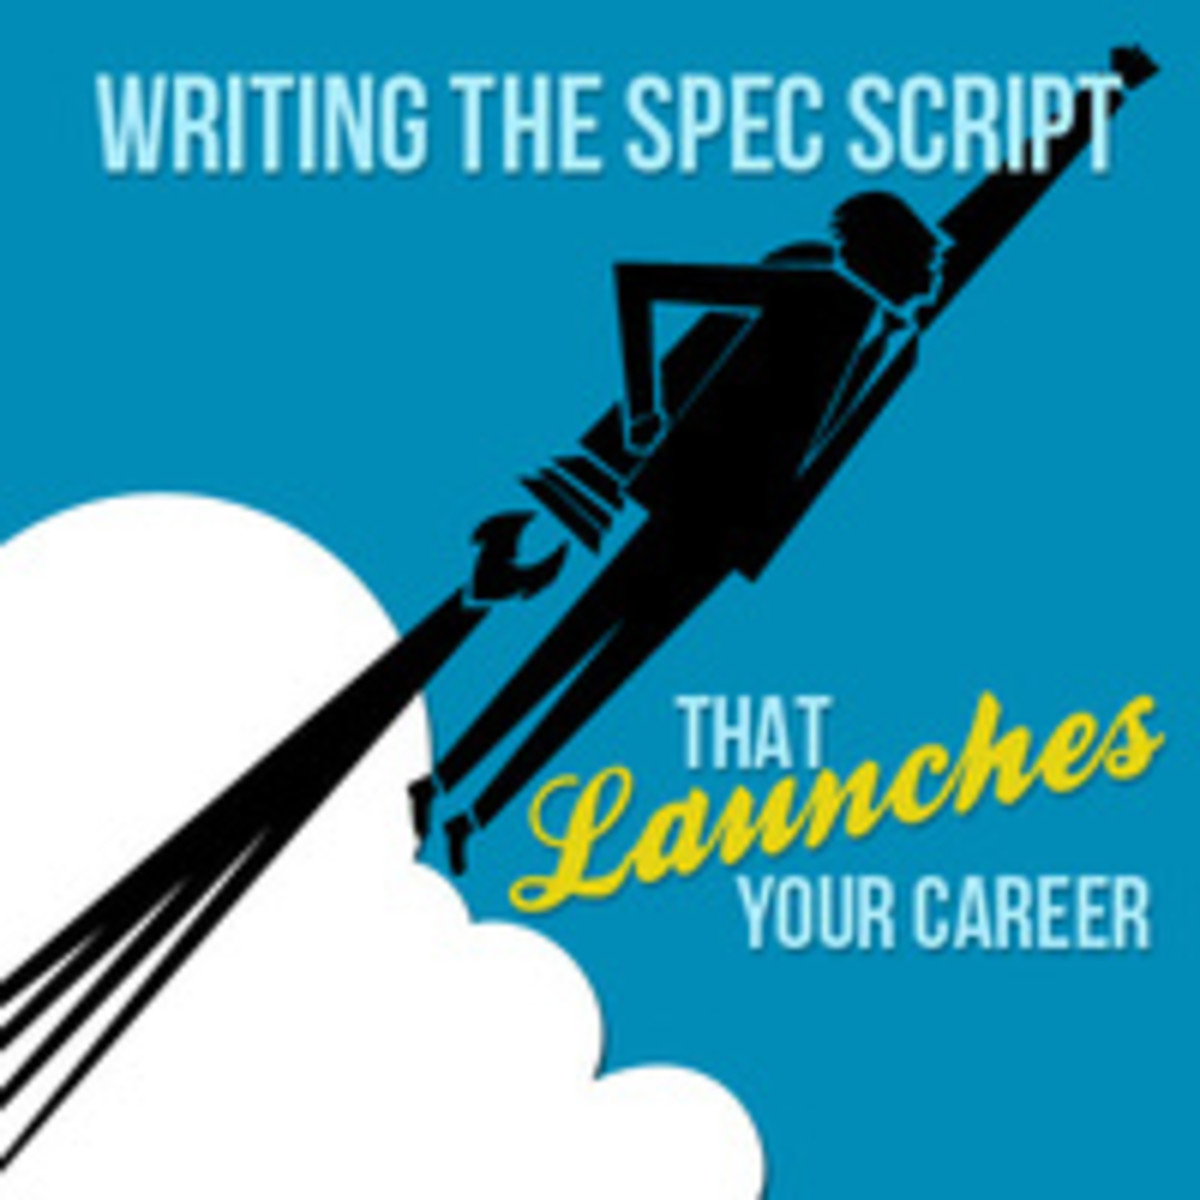 Writing the spec script that launches your screenwriting career.